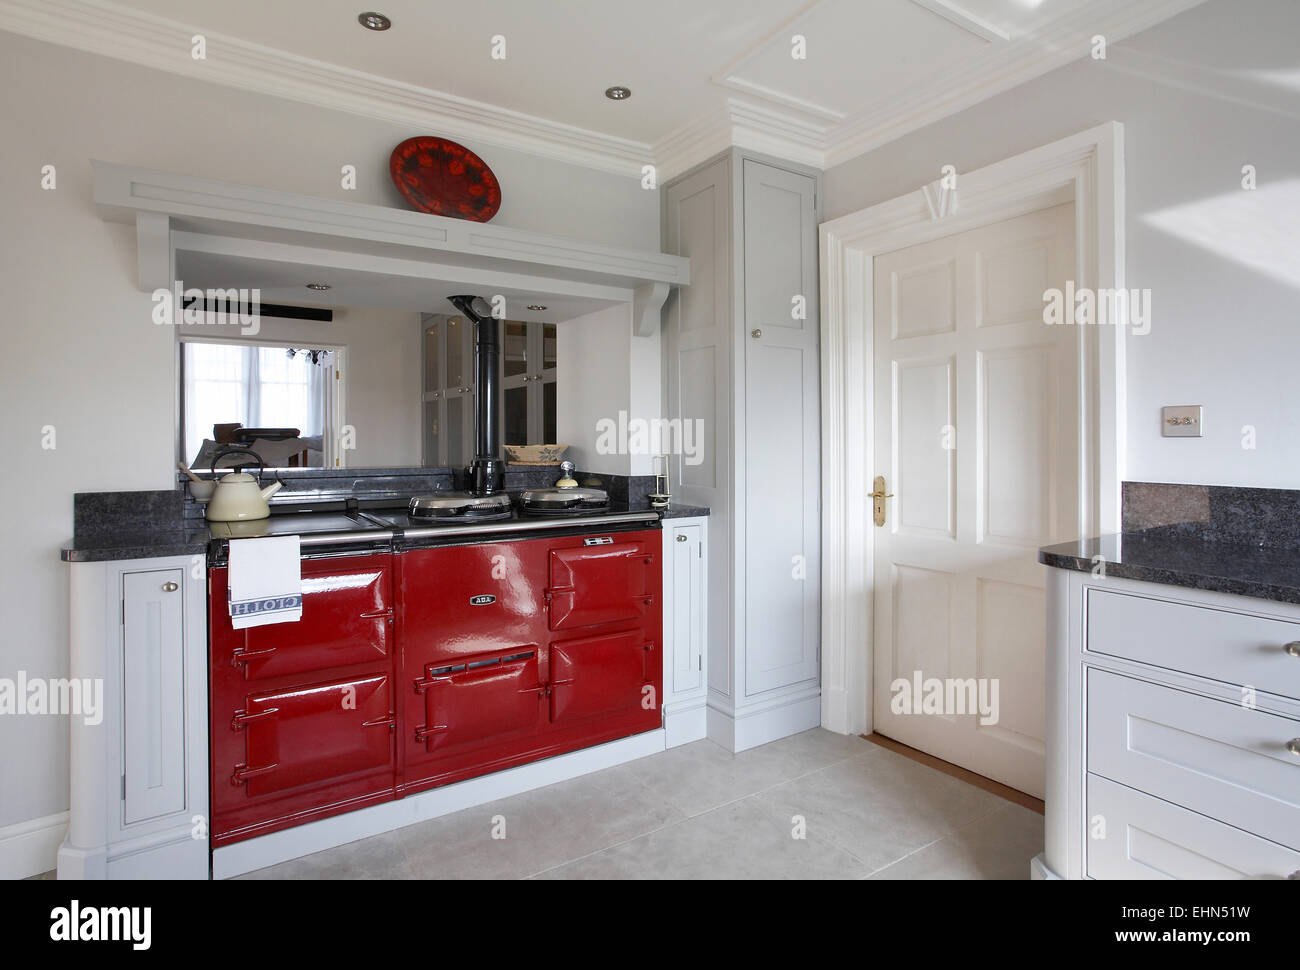 A Red Aga Cooker In A Modern Kitchen In A Home In The Uk Stock Photo Alamy